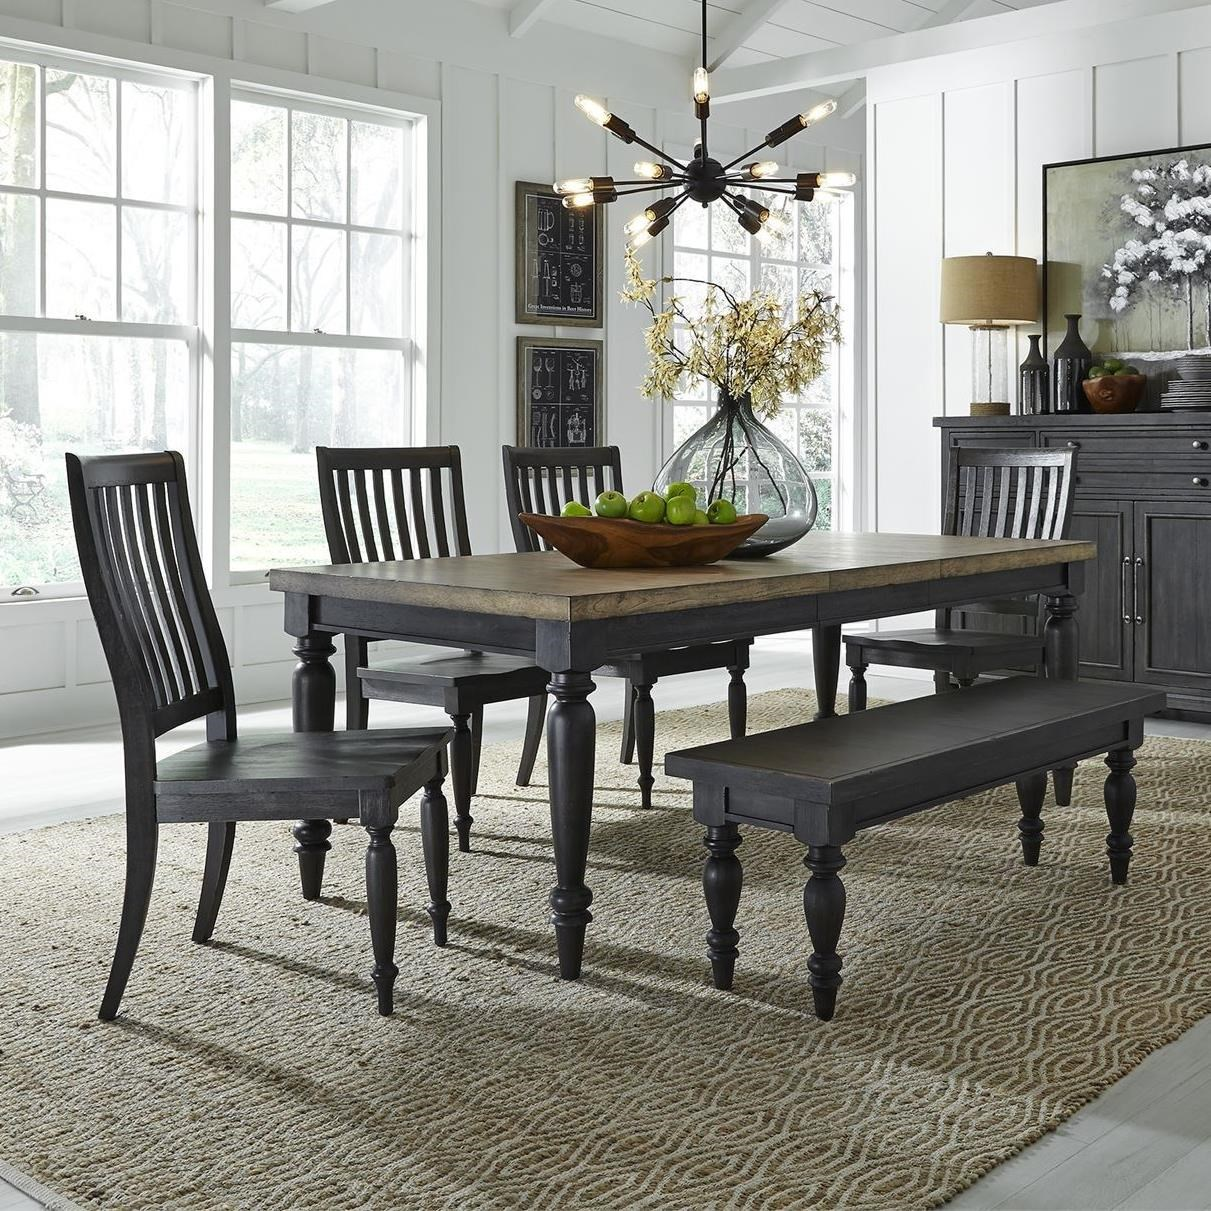 Harvest Home 6-Piece Rectangular Table Set by Liberty Furniture at Northeast Factory Direct